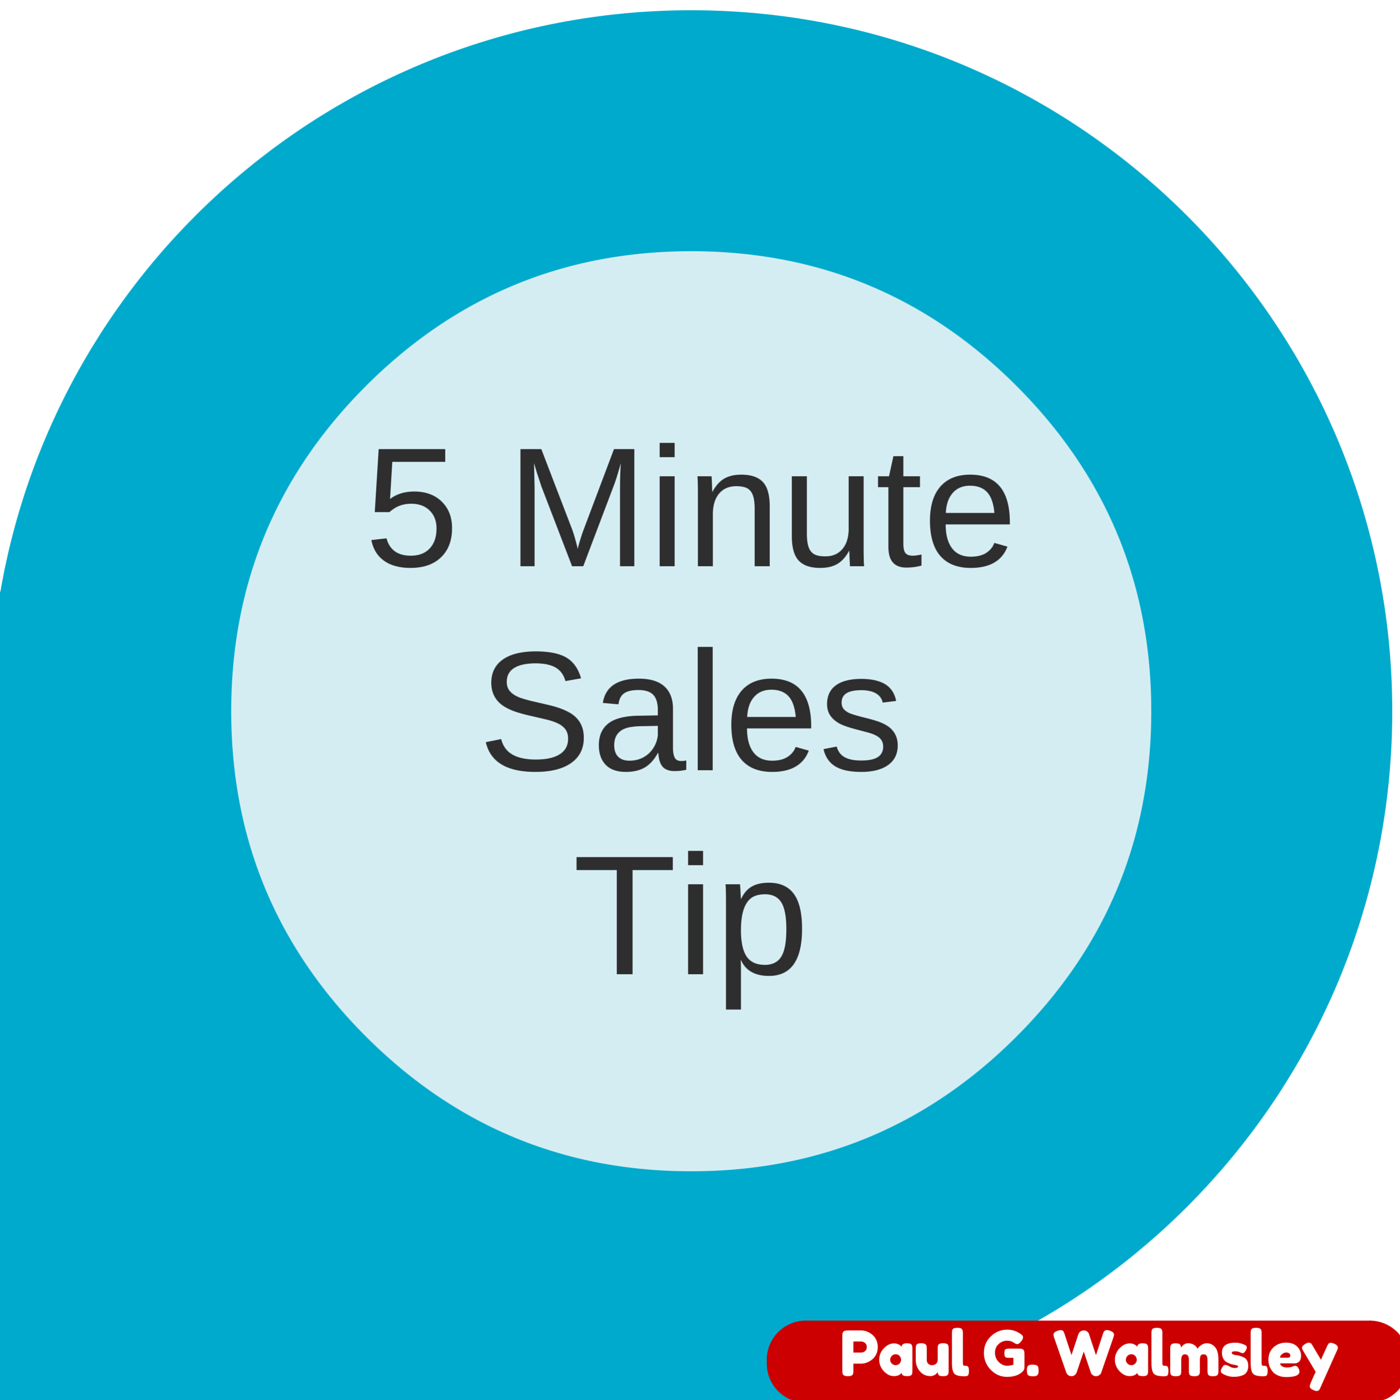 Episode 33: 5 Minute Sales Tip - Keep In Touch With Your Clients